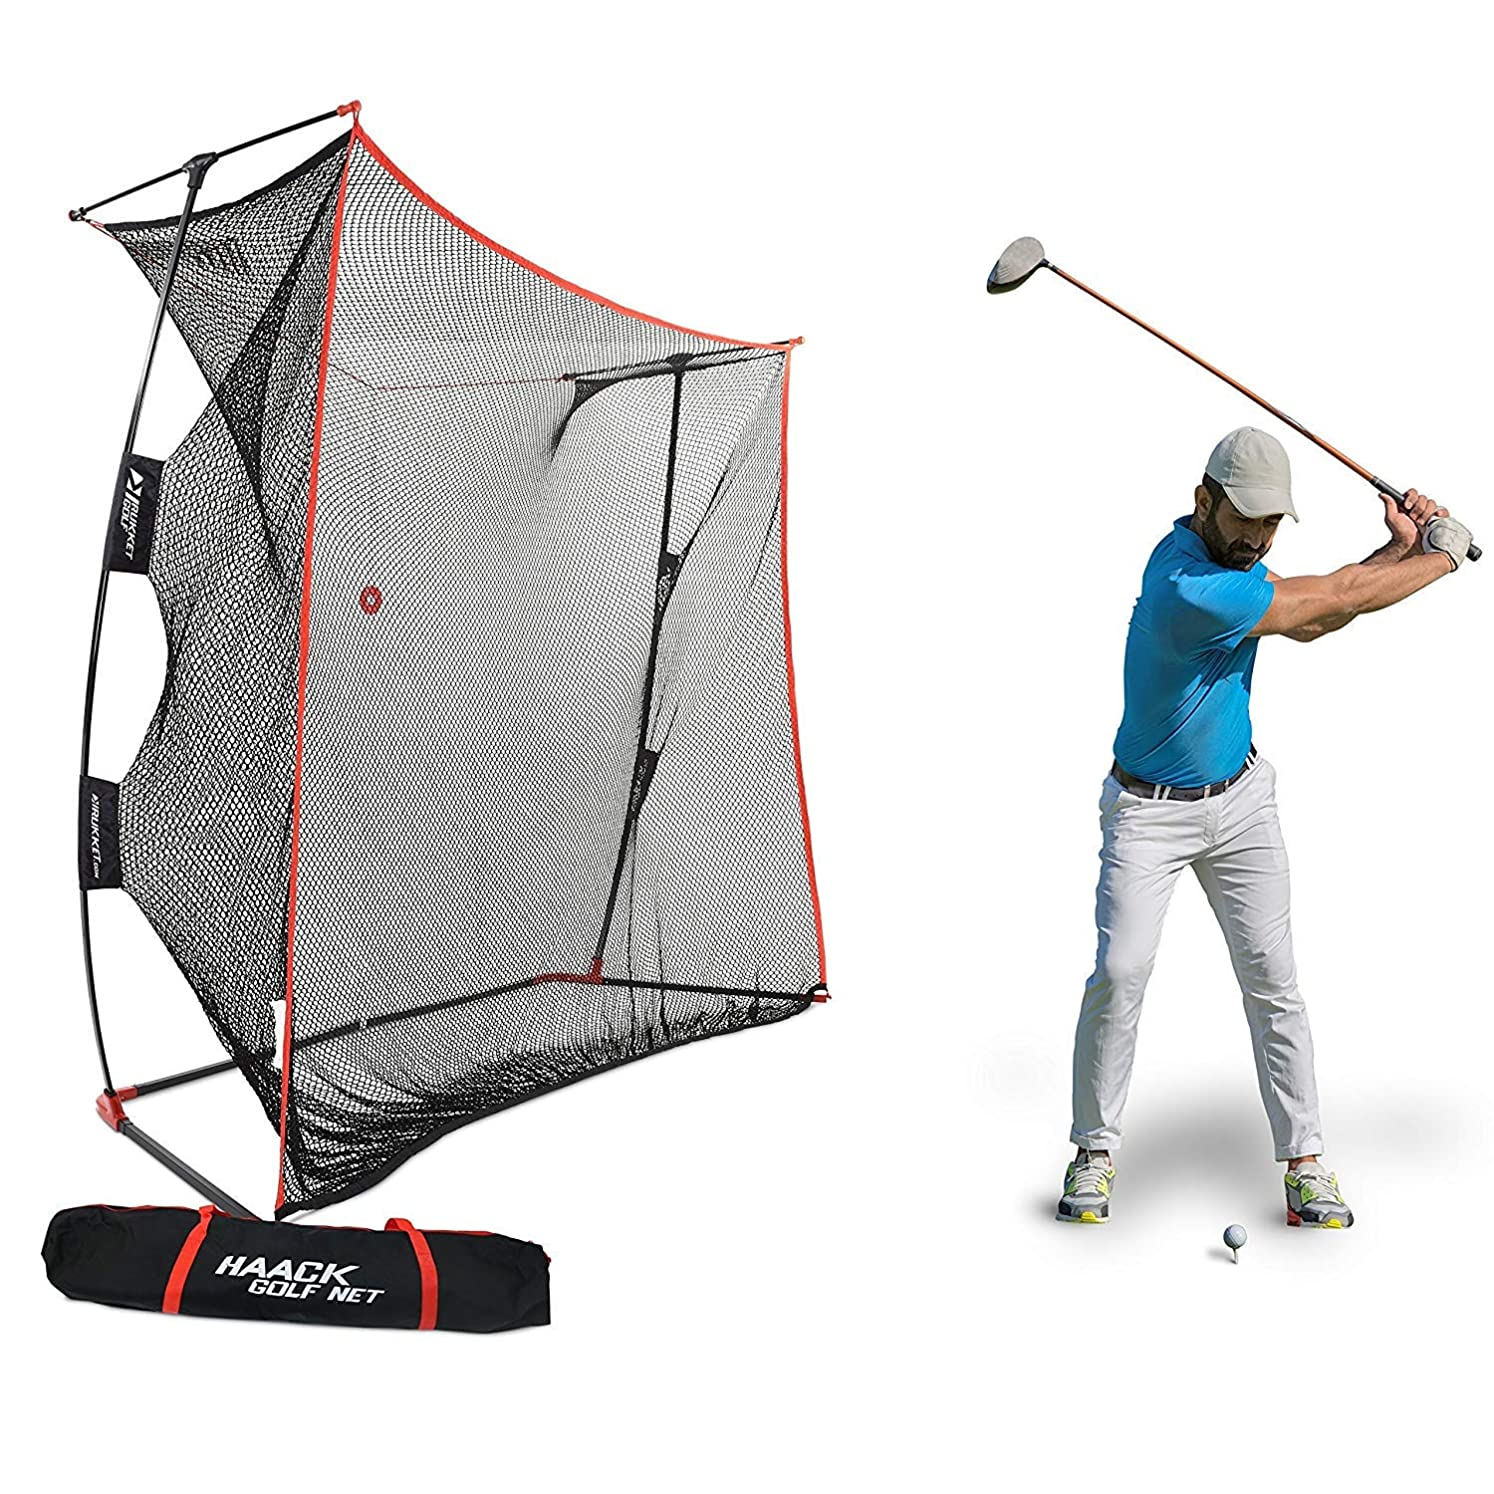 Rukket 9x7x3ft Haack Golf Net Pro | Practice Driving Indoor and Outdoor | Professional Golfing at Home Swing Training Aids | by SEC Coach Chris Haack usmotitut3999470